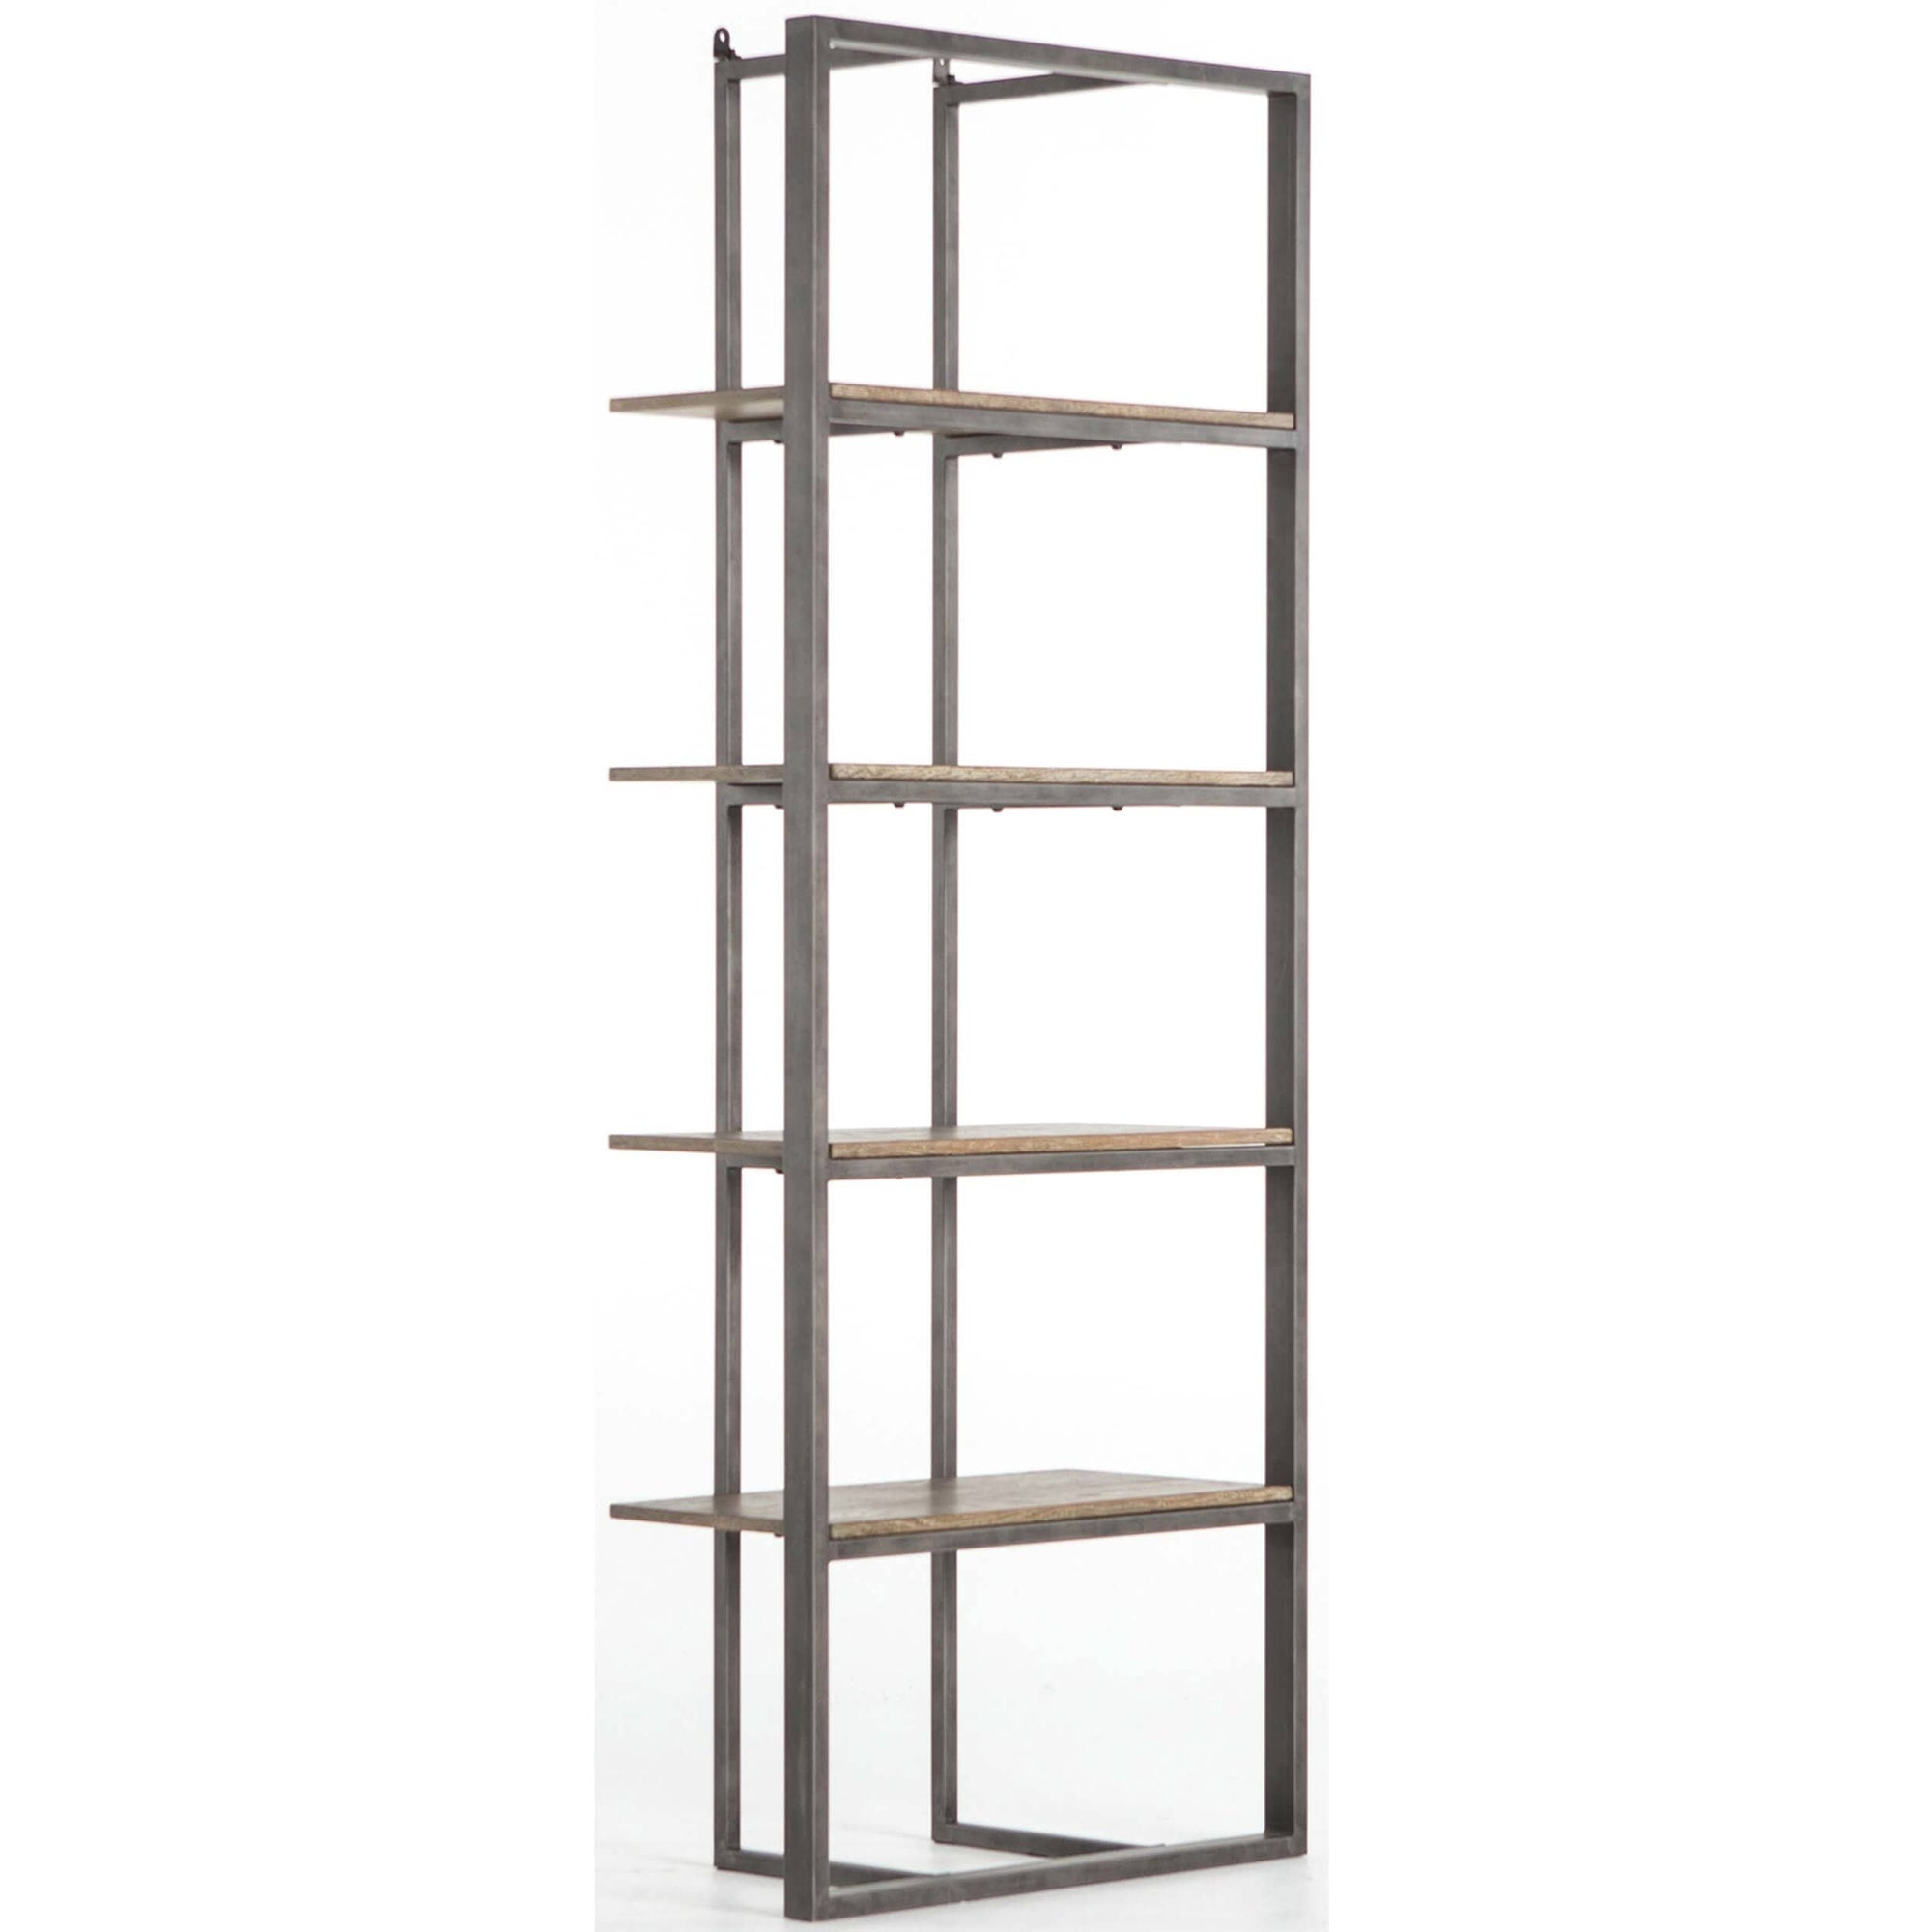 Grainger Bookshelf Light Rustic Black High Fashion Home